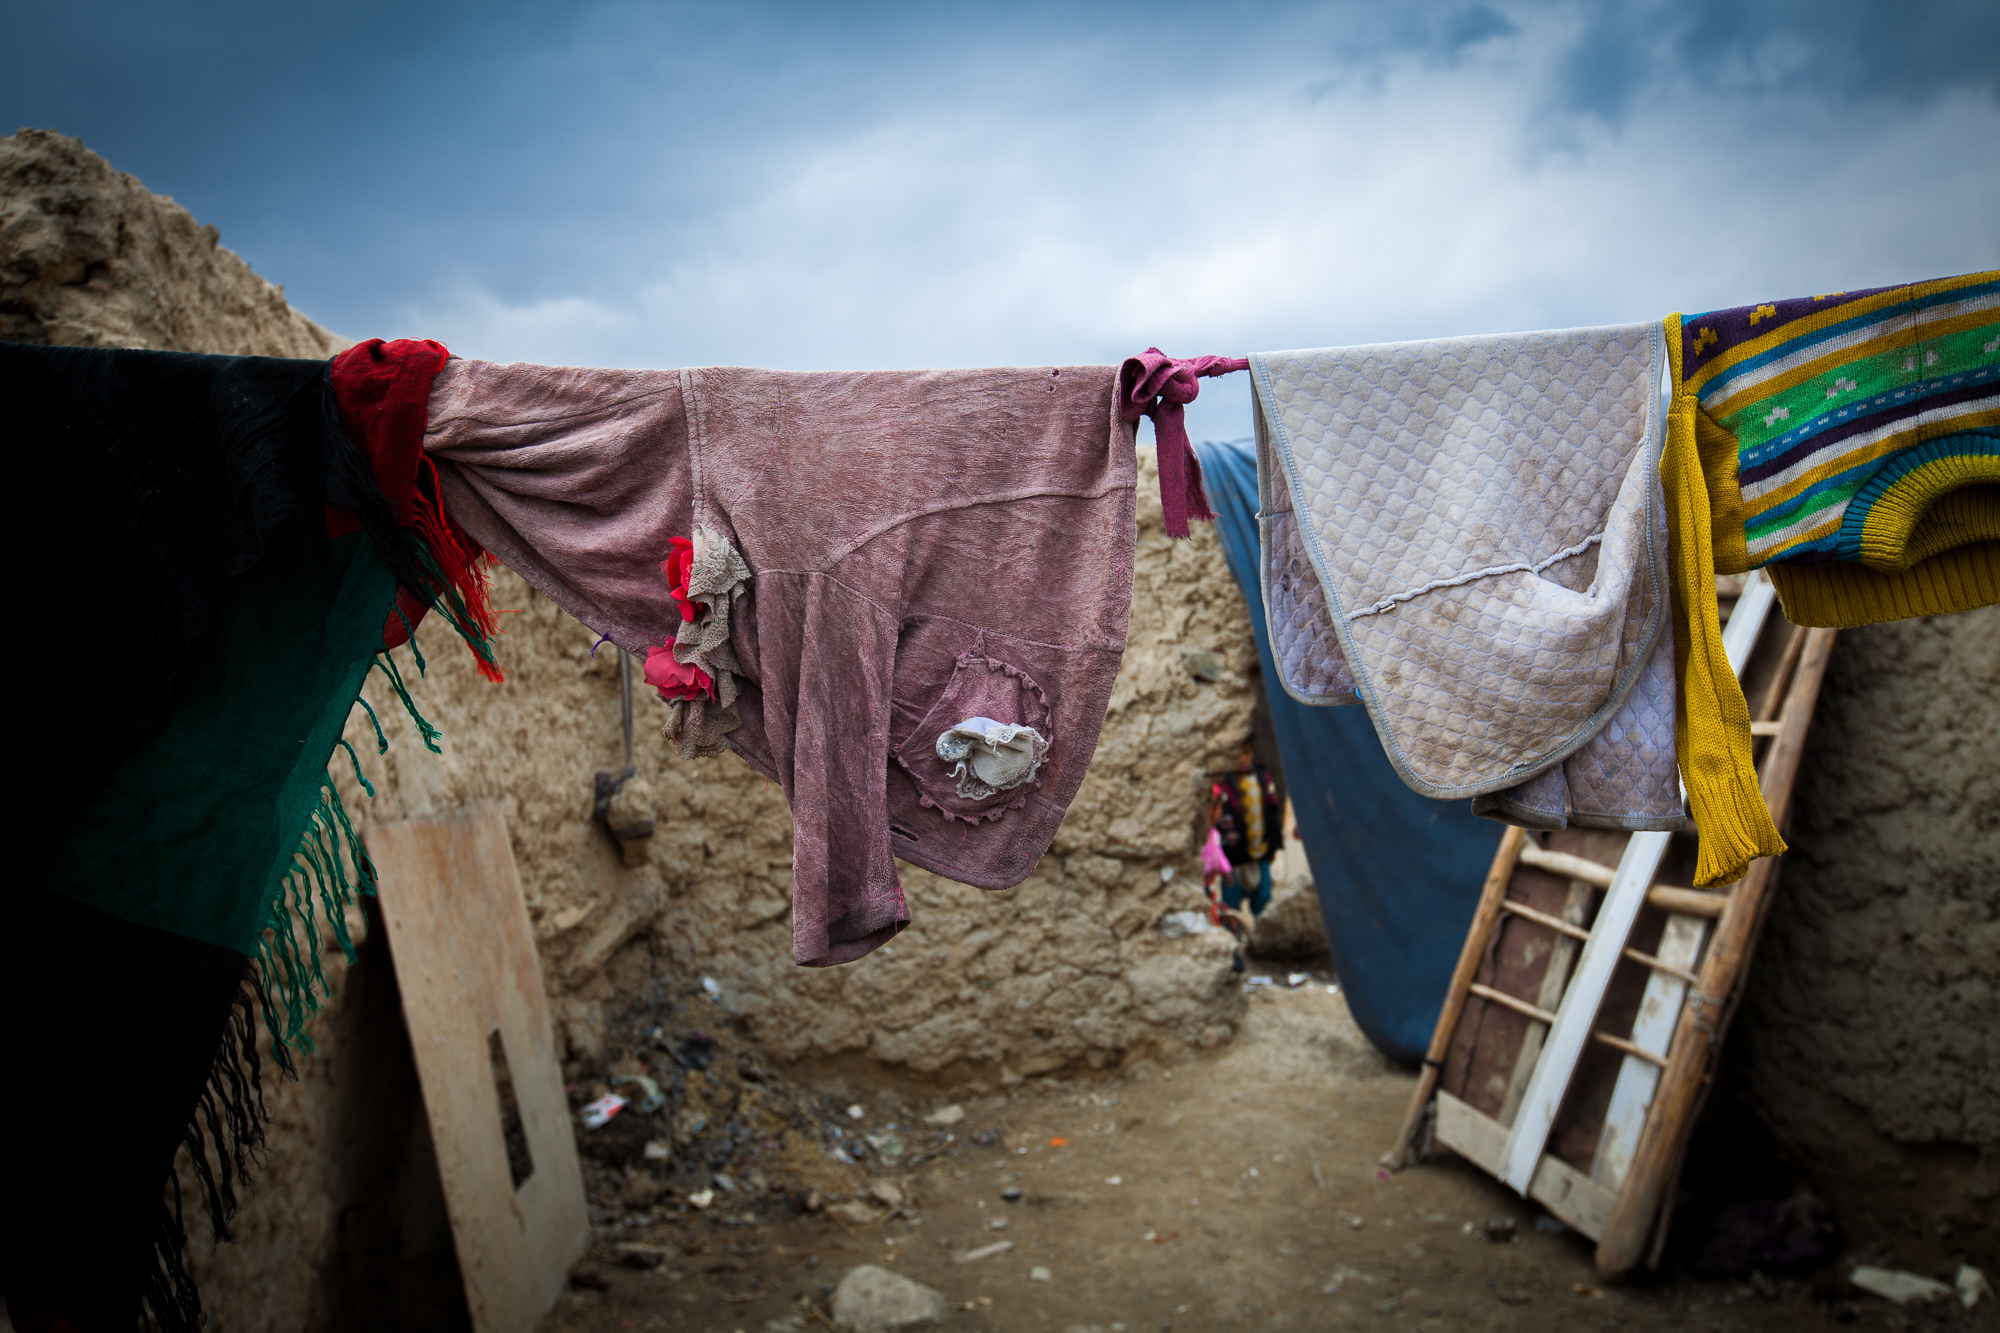 The people living in the camp are settled and don't seem to be moving any time soon. The government is struggling to resettle the displaced in peaceful communities because local residents don't want Afghans from other provinces moving into their villages and competing for limited jobs and resources.